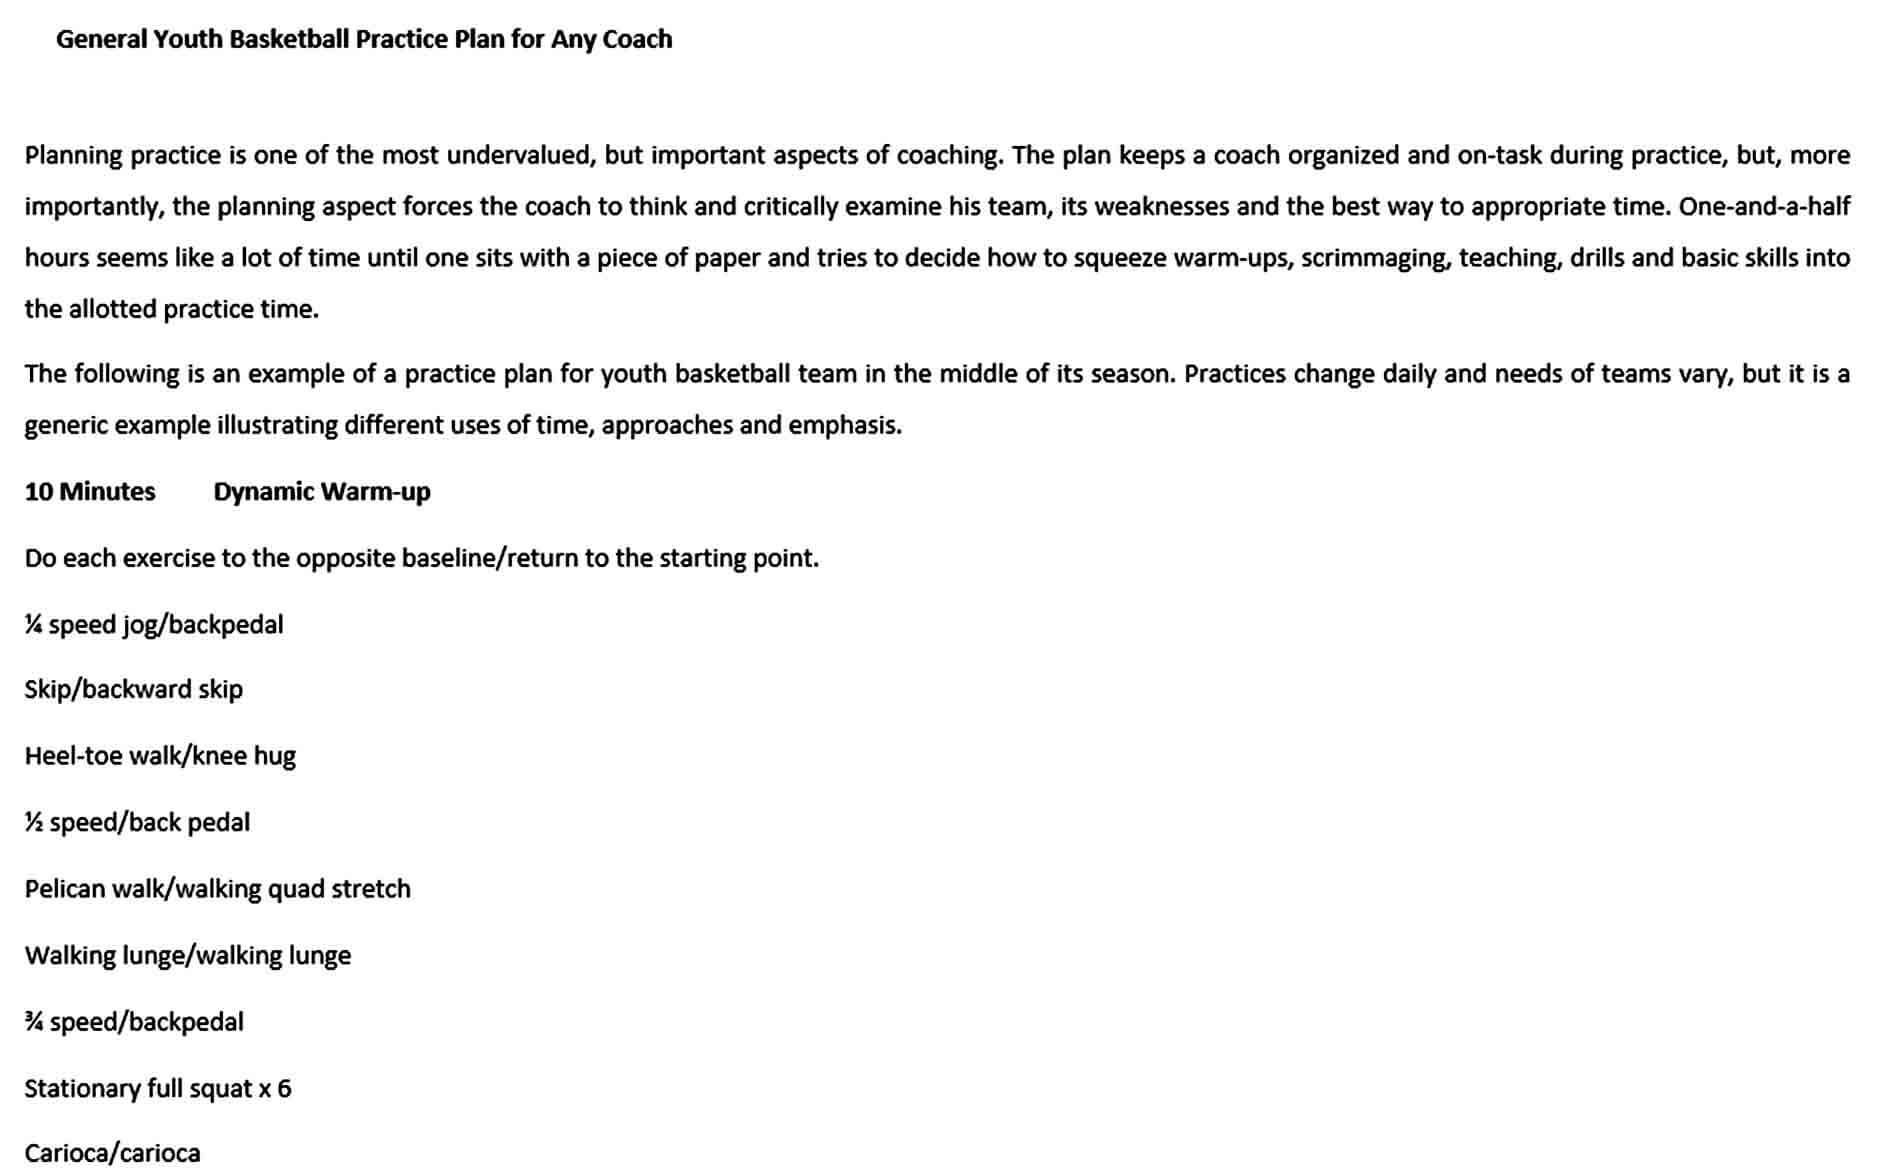 Templates General Youth Basketball Practice Plan for Any Coach Free Word Do